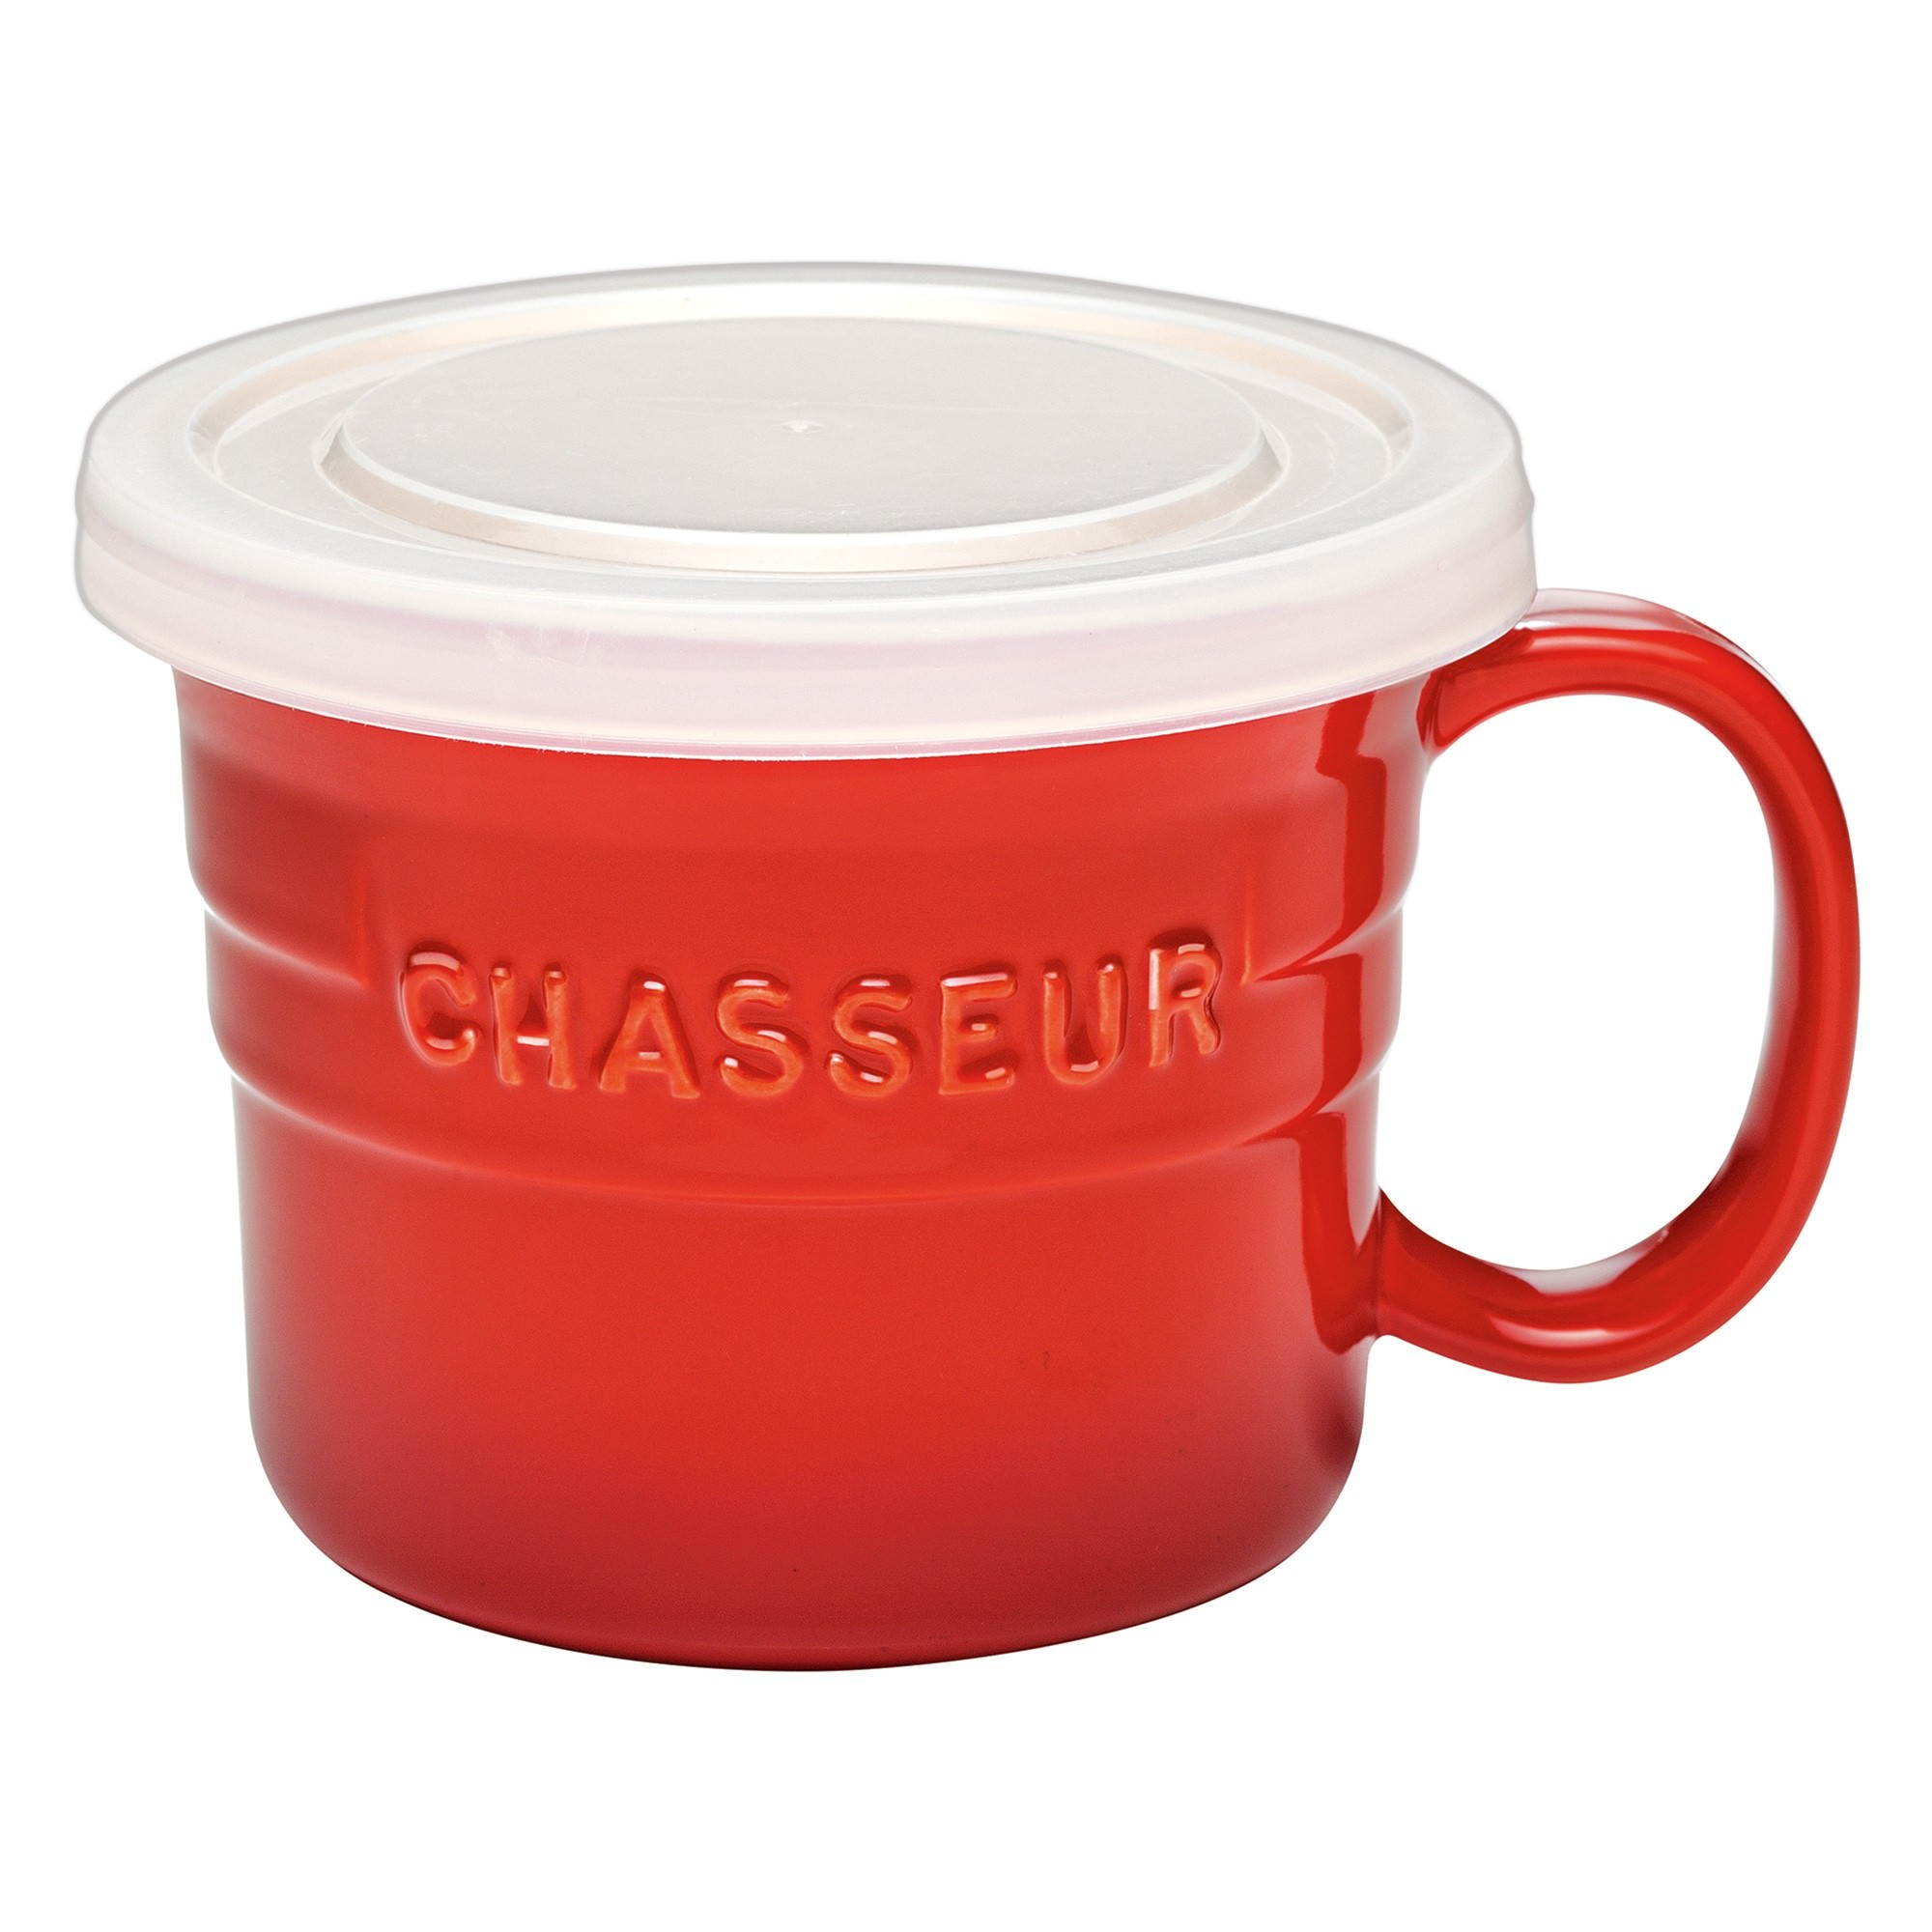 Chasseur La Cuisson Soup Mug with Lid, 500ml, Red